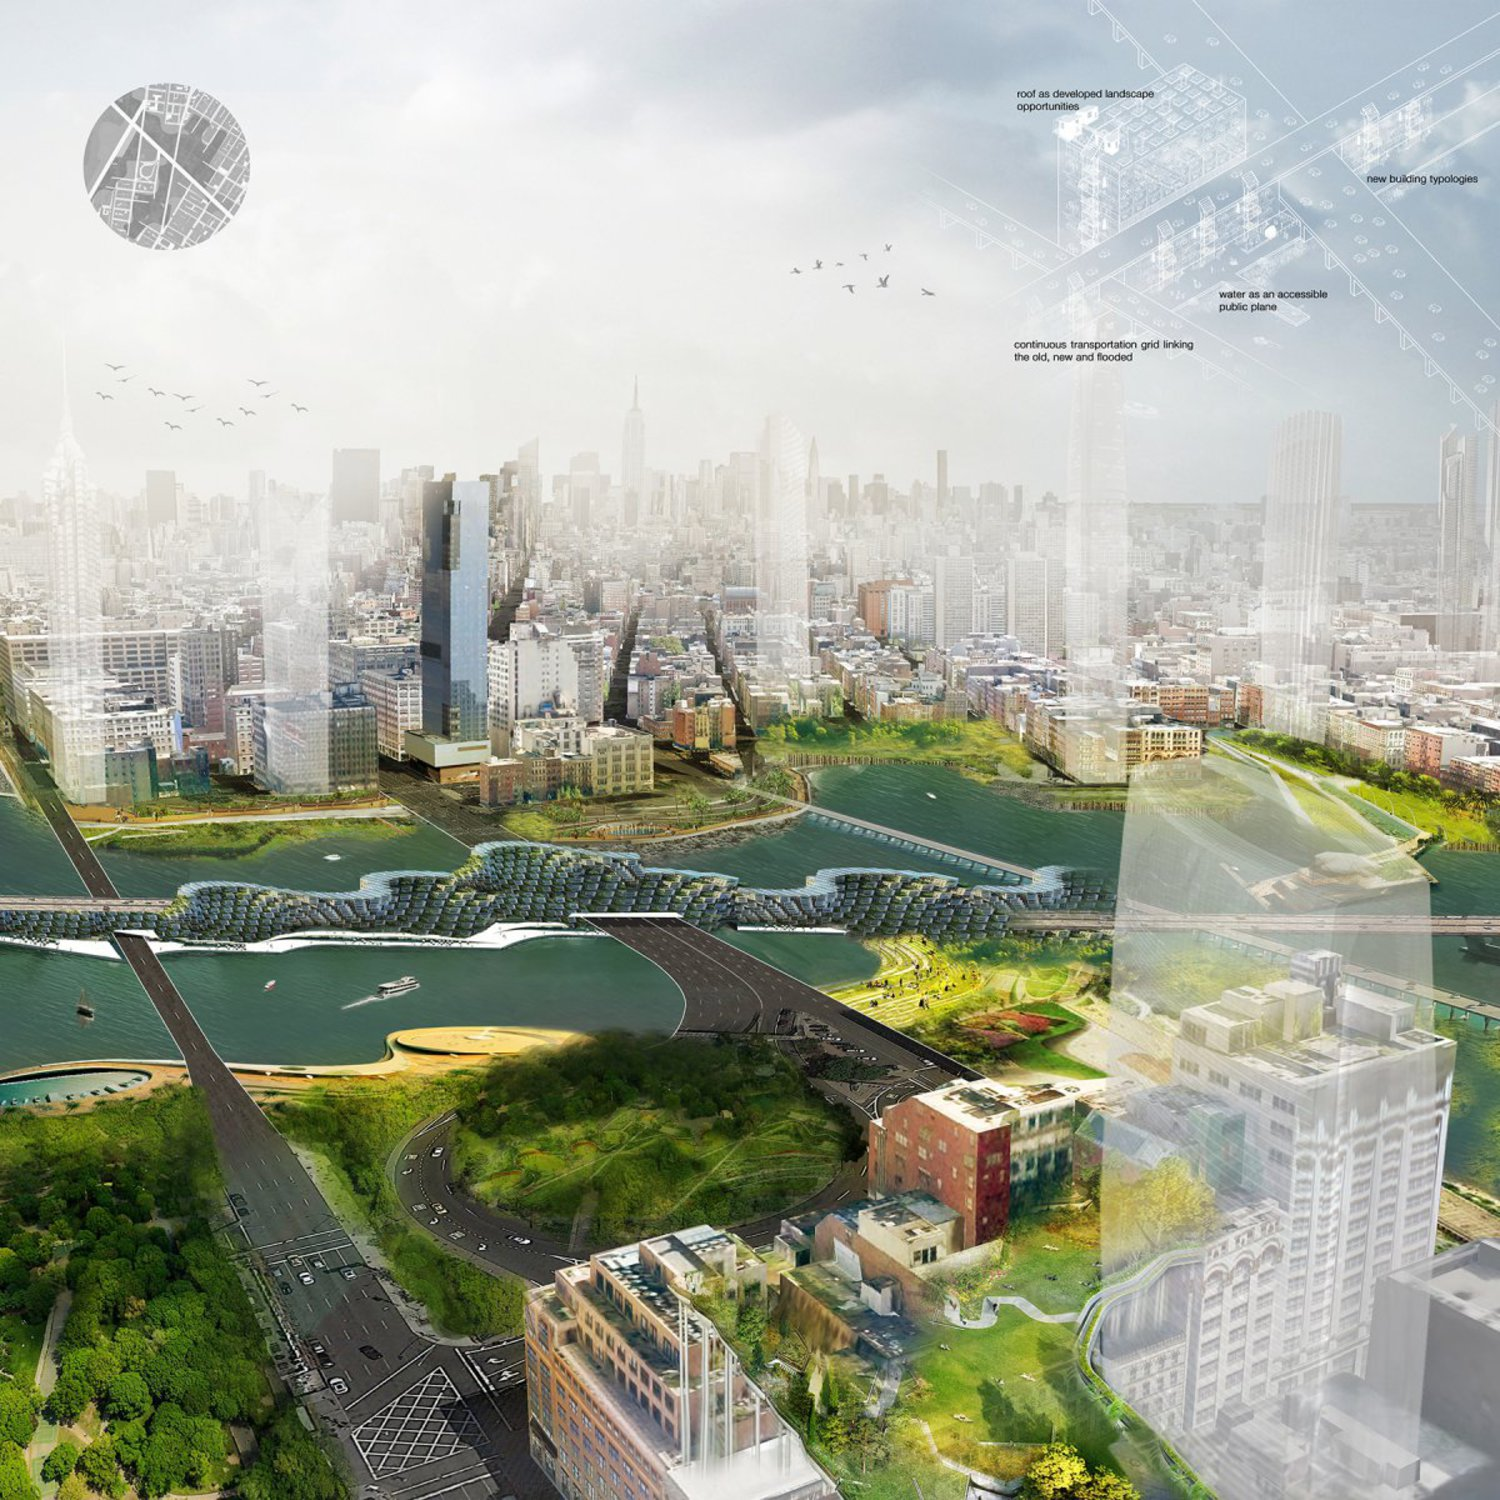 Luz's vision for New York City in 2050